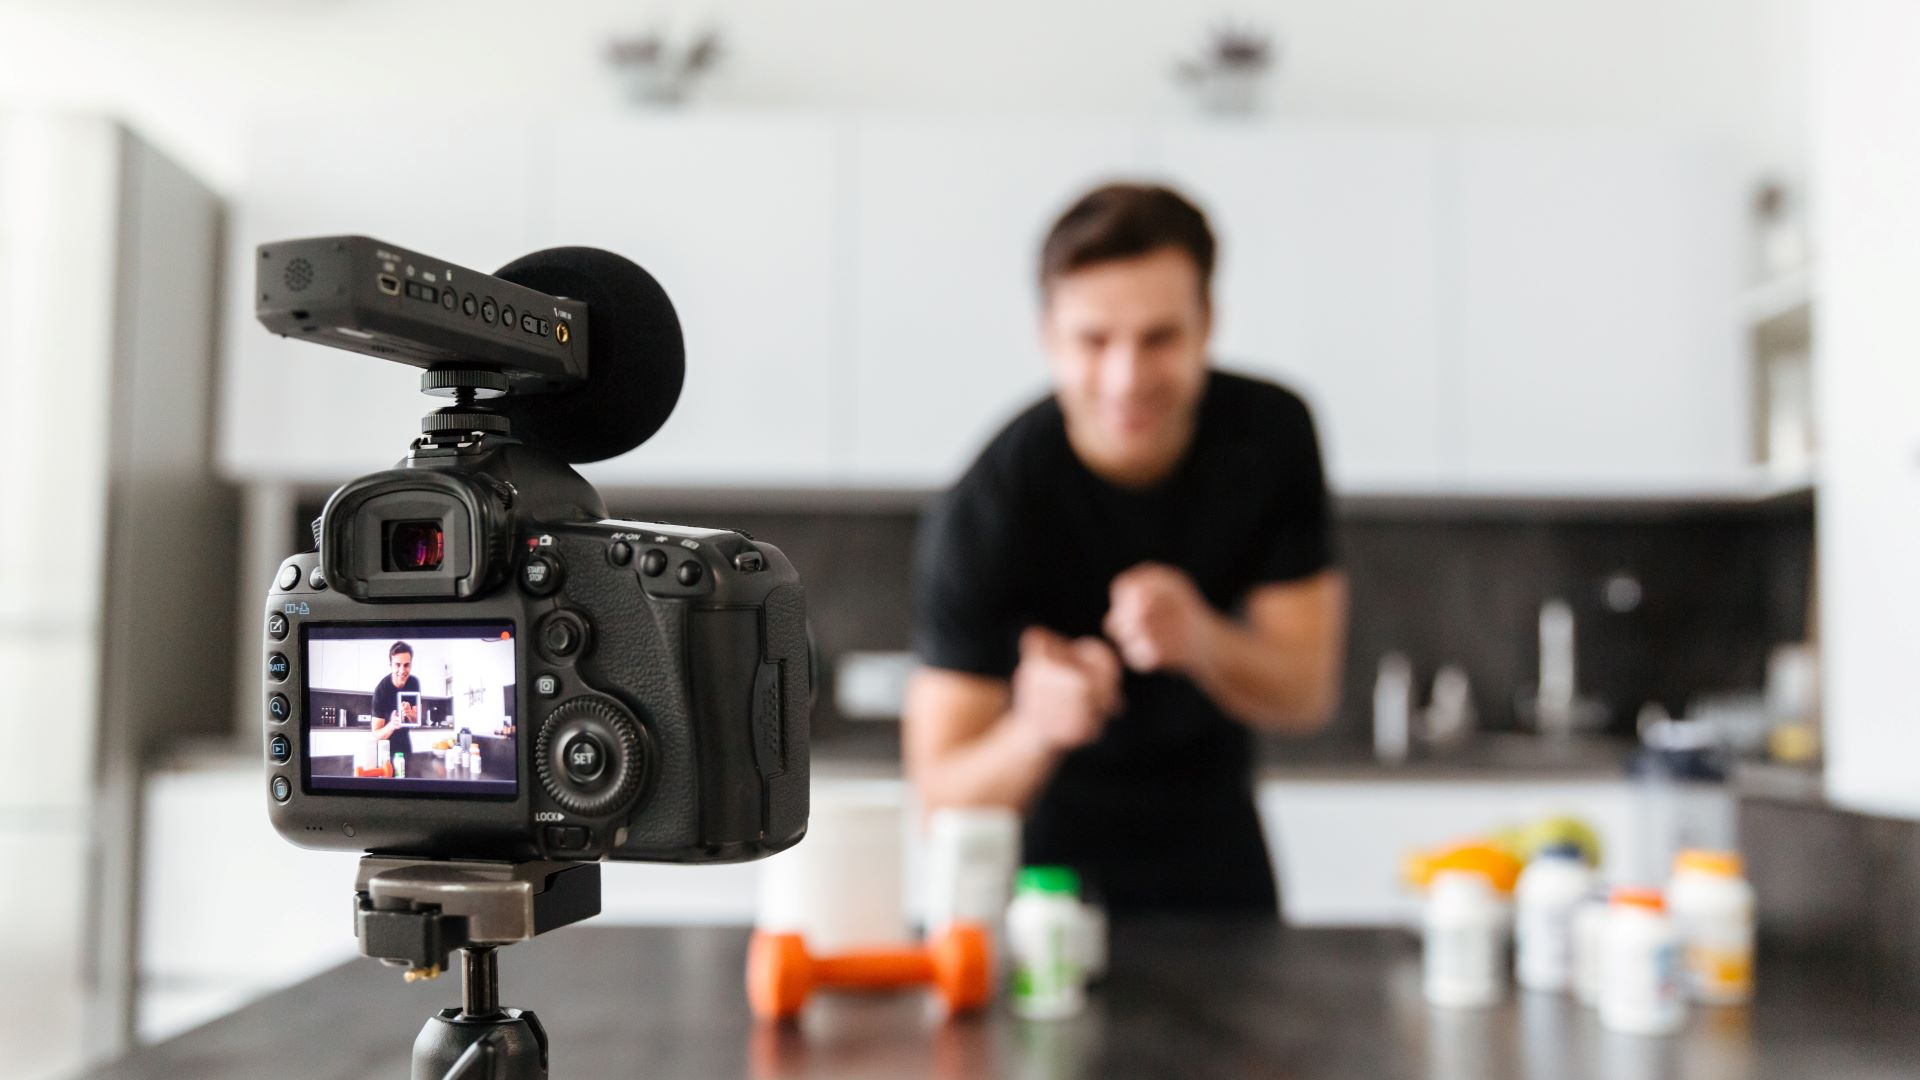 Talent recording content for sales pitch video for wellness products